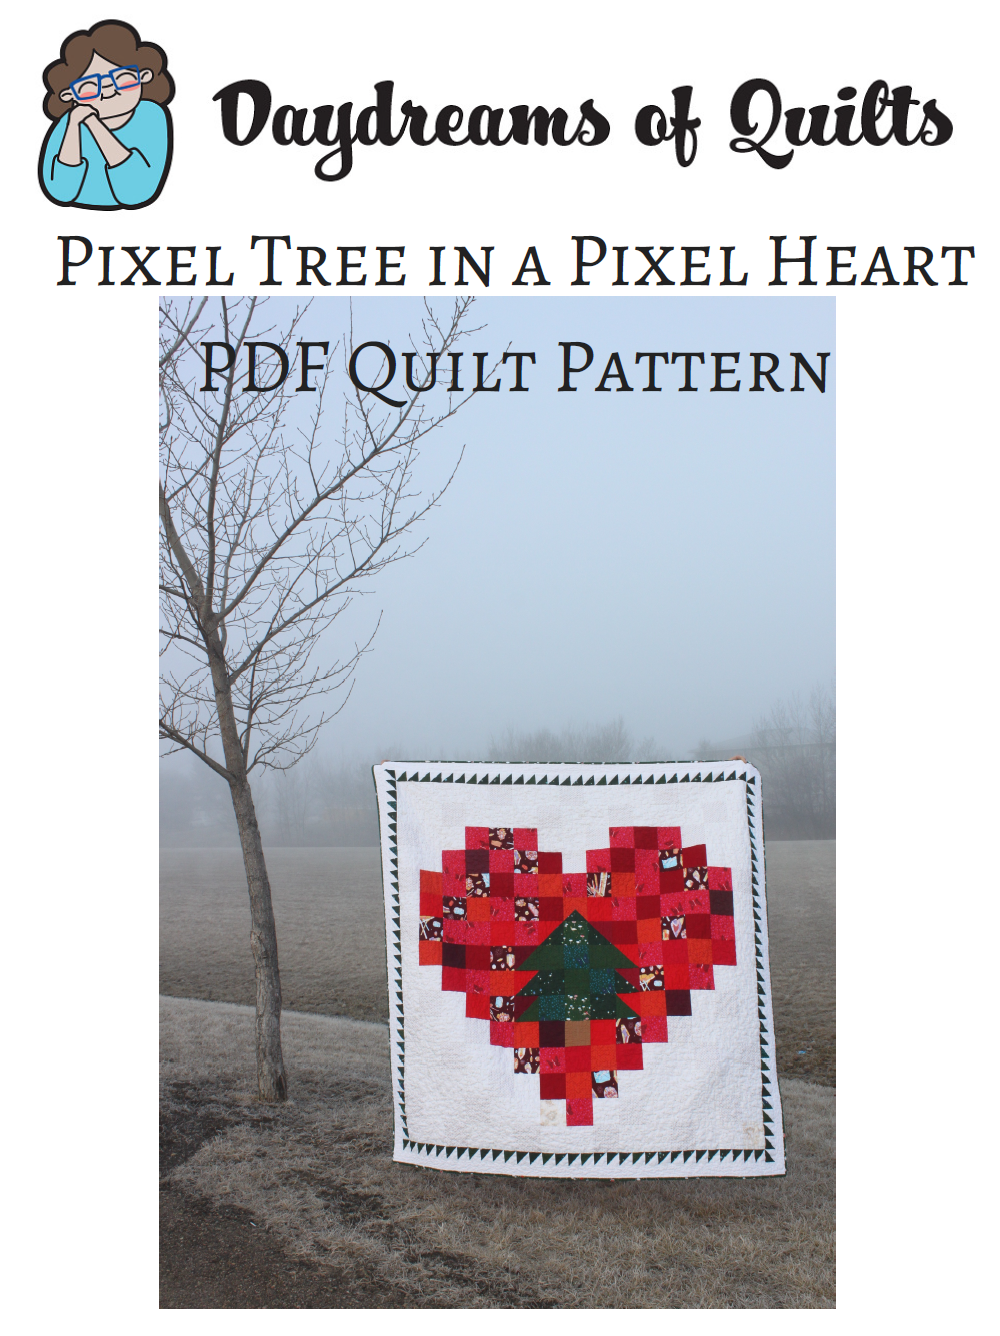 Daydreams of Quilts - Pixel Tree in a Pixel Heart by Anita LaHay.png